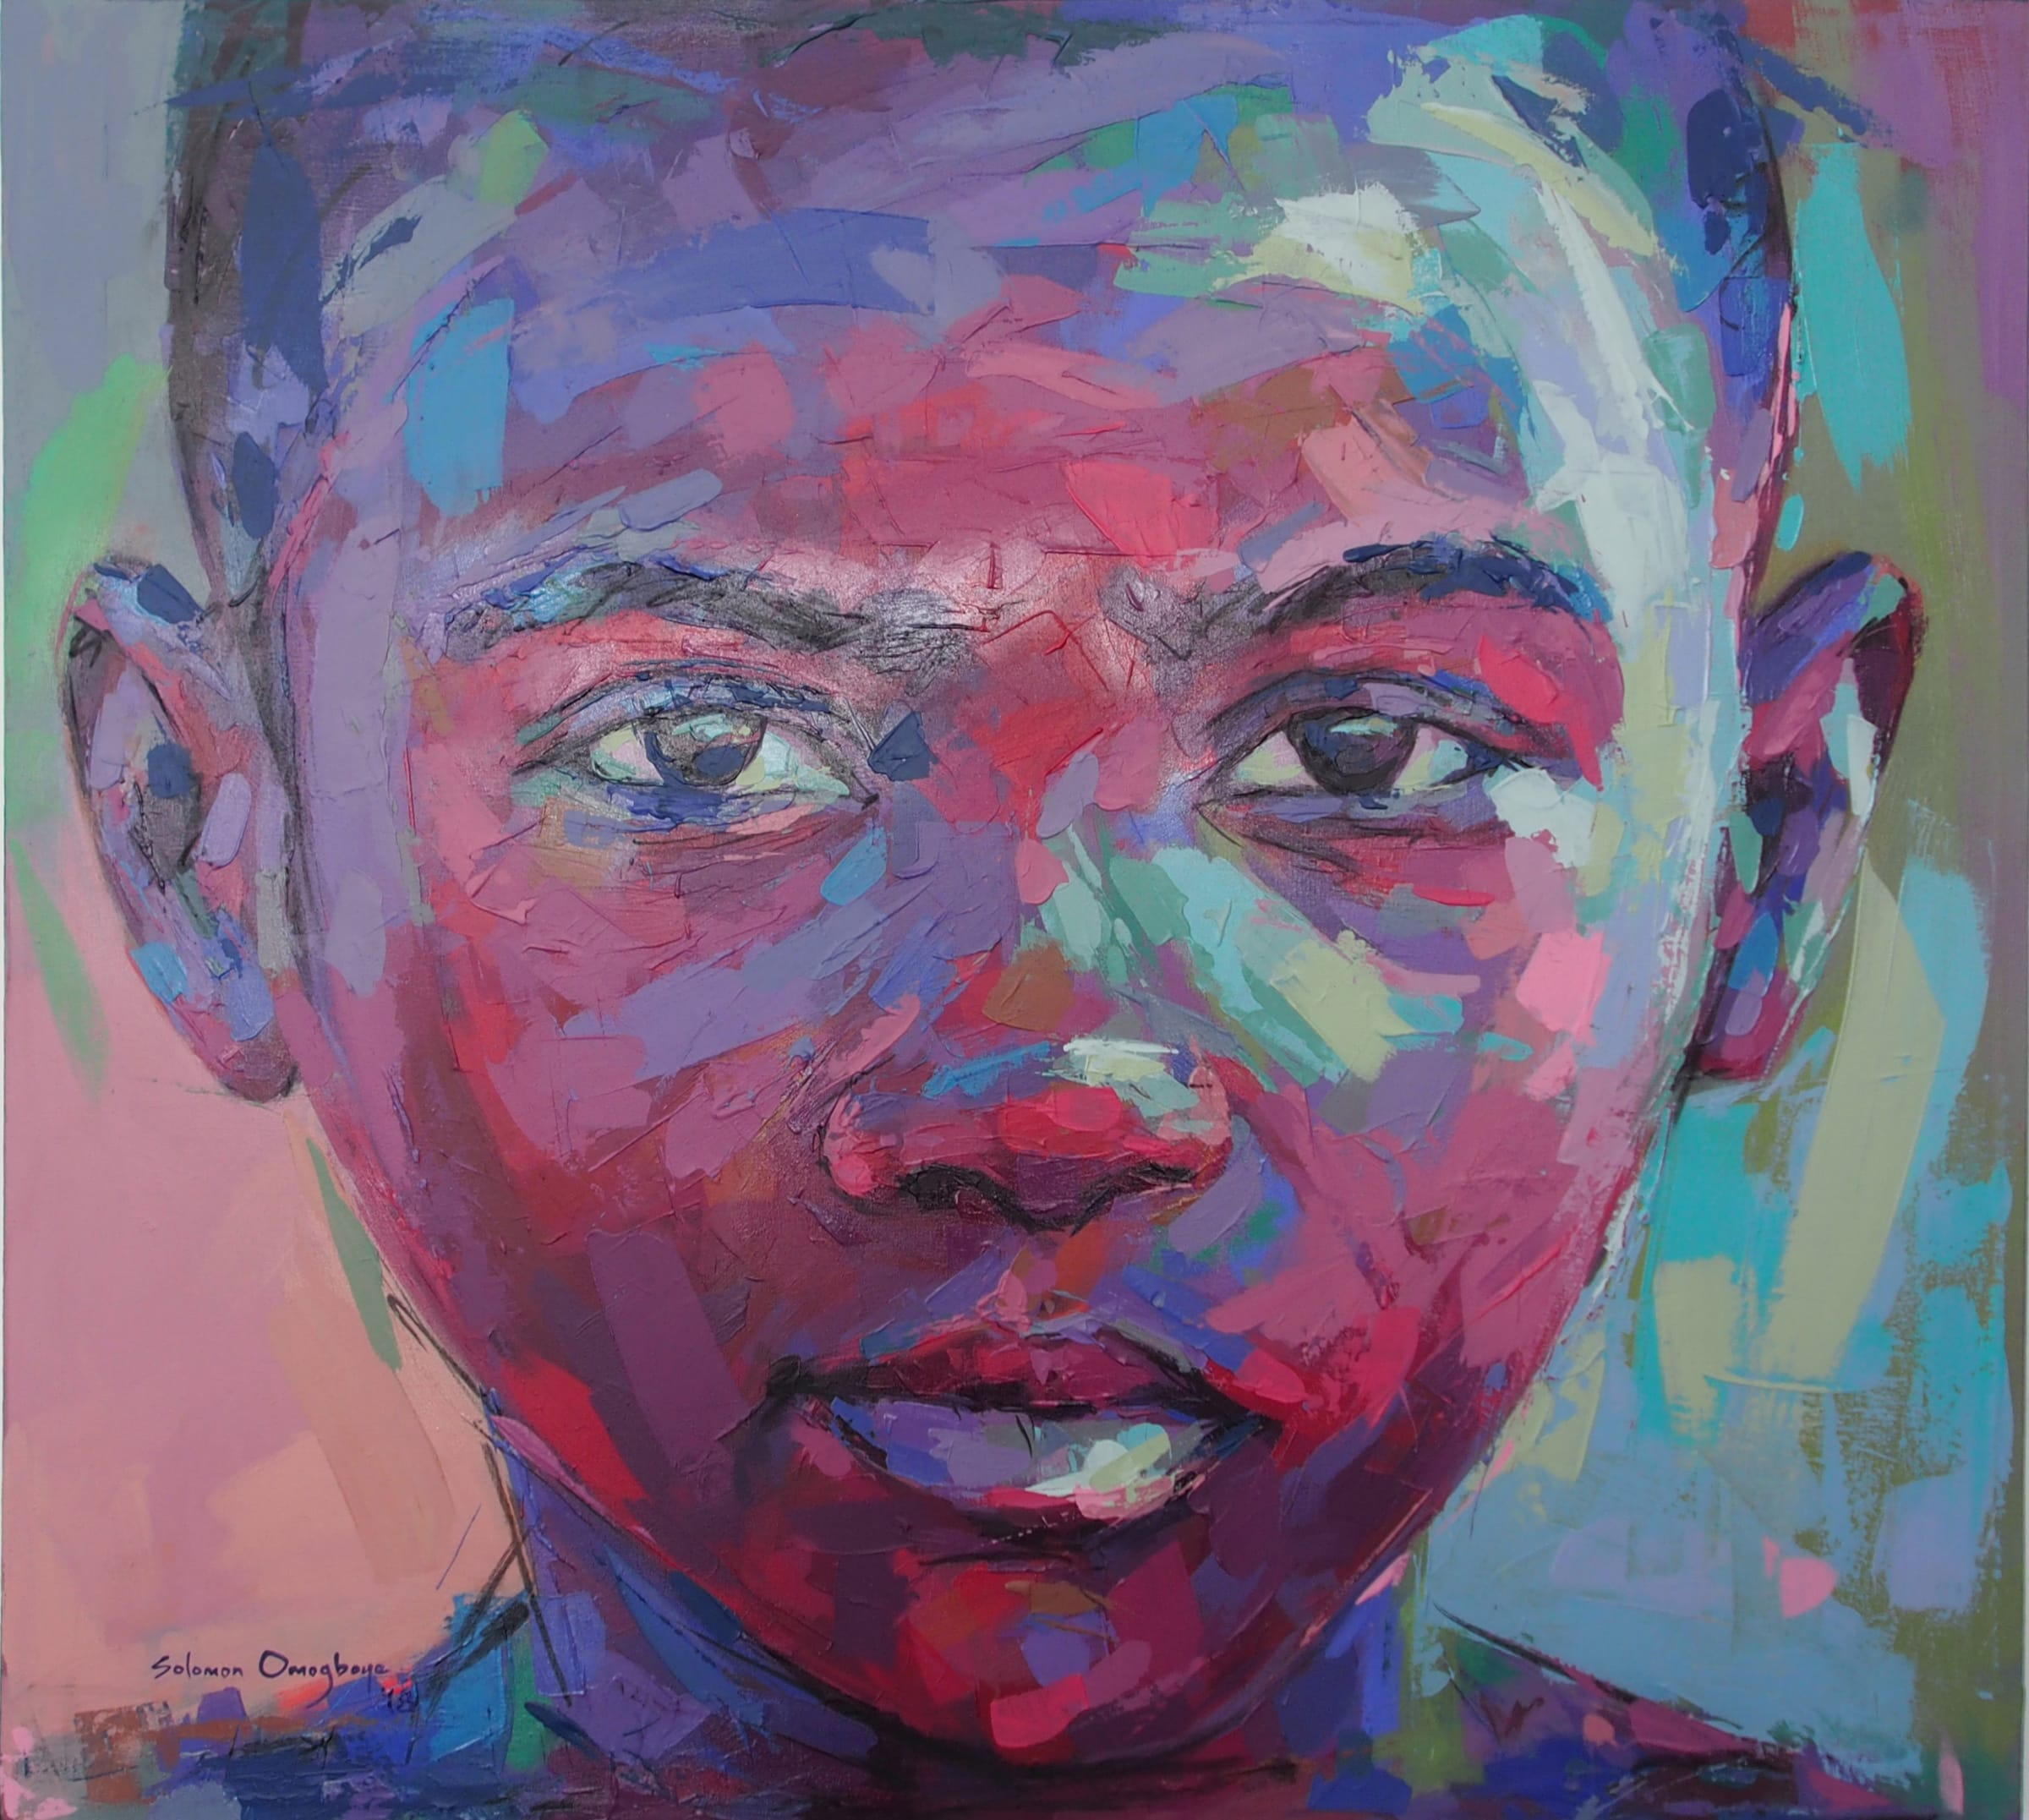 <span class=&#34;link fancybox-details-link&#34;><a href=&#34;/artists/39-solomon-omogboye/works/2017-solomon-omogboye-hope-reflection-2018/&#34;>View Detail Page</a></span><div class=&#34;artist&#34;><strong>Solomon Omogboye</strong></div> <div class=&#34;title&#34;><em>Hope Reflection</em>, 2018</div> <div class=&#34;medium&#34;>Acrylic On Canvas</div> <div class=&#34;dimensions&#34;>110cm x 100cm</div>